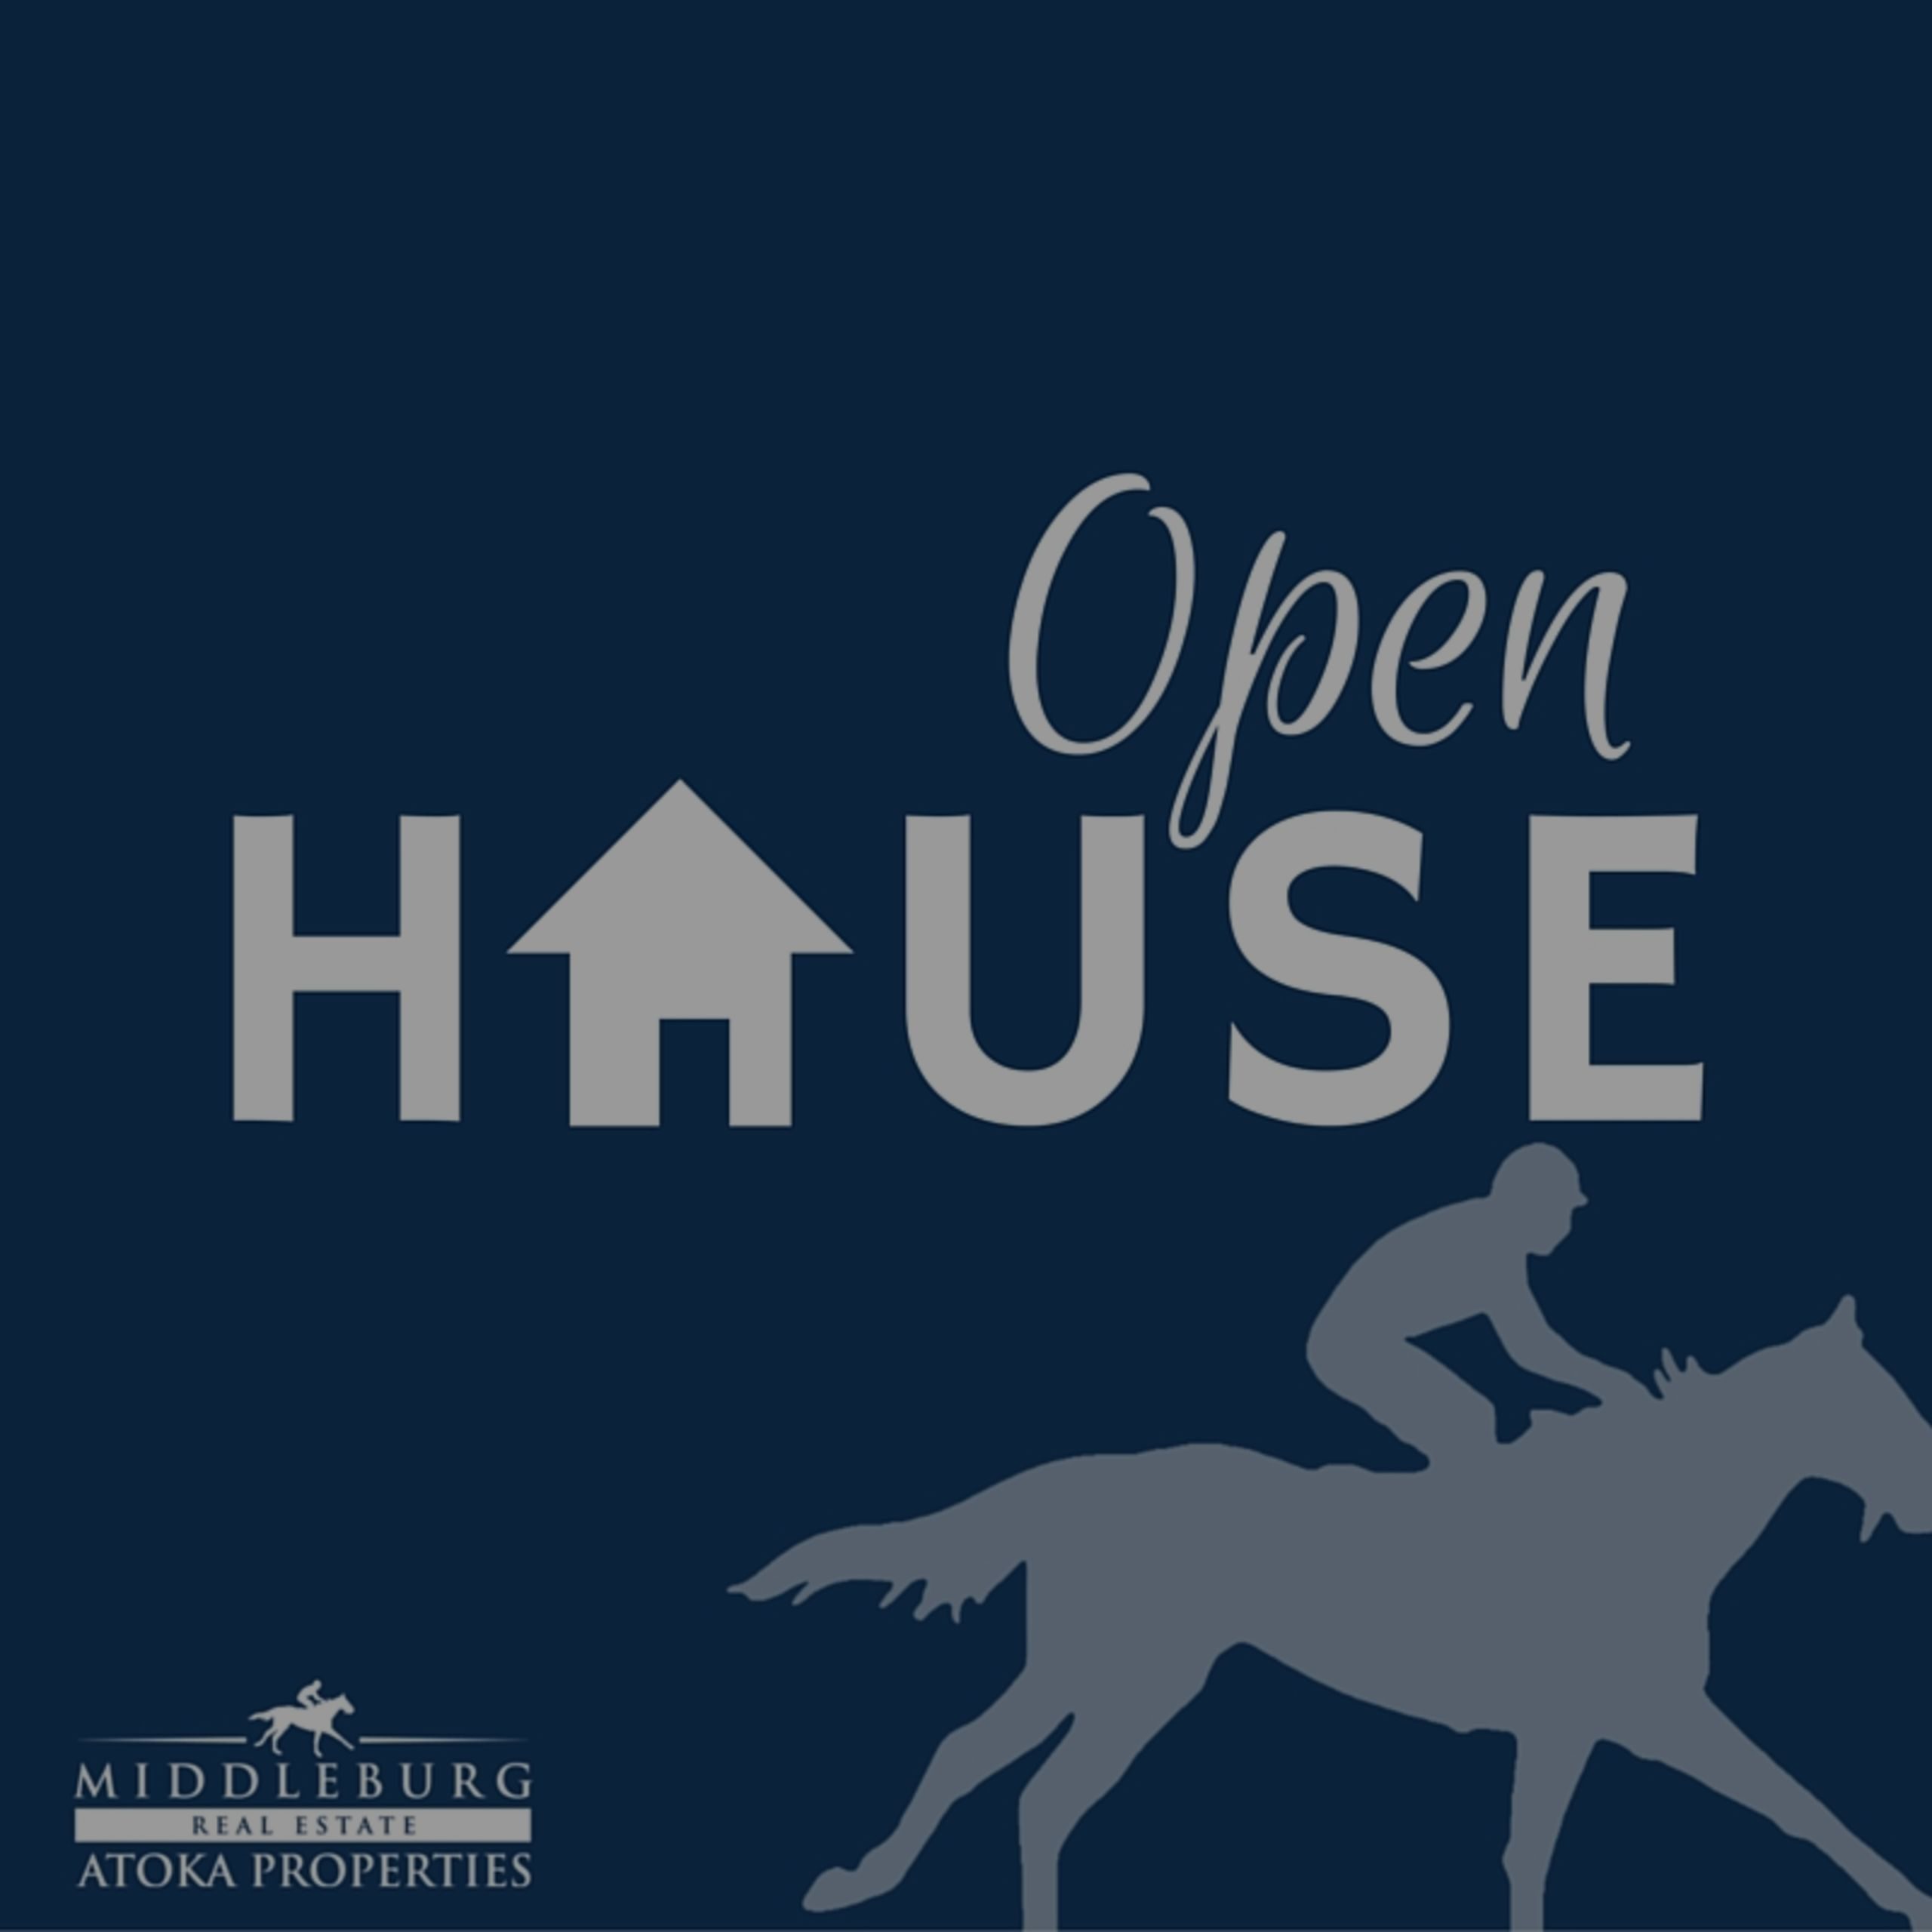 5 Public Open Houses SUNDAY! Round Hill, Leesburg, & Springfield, VA